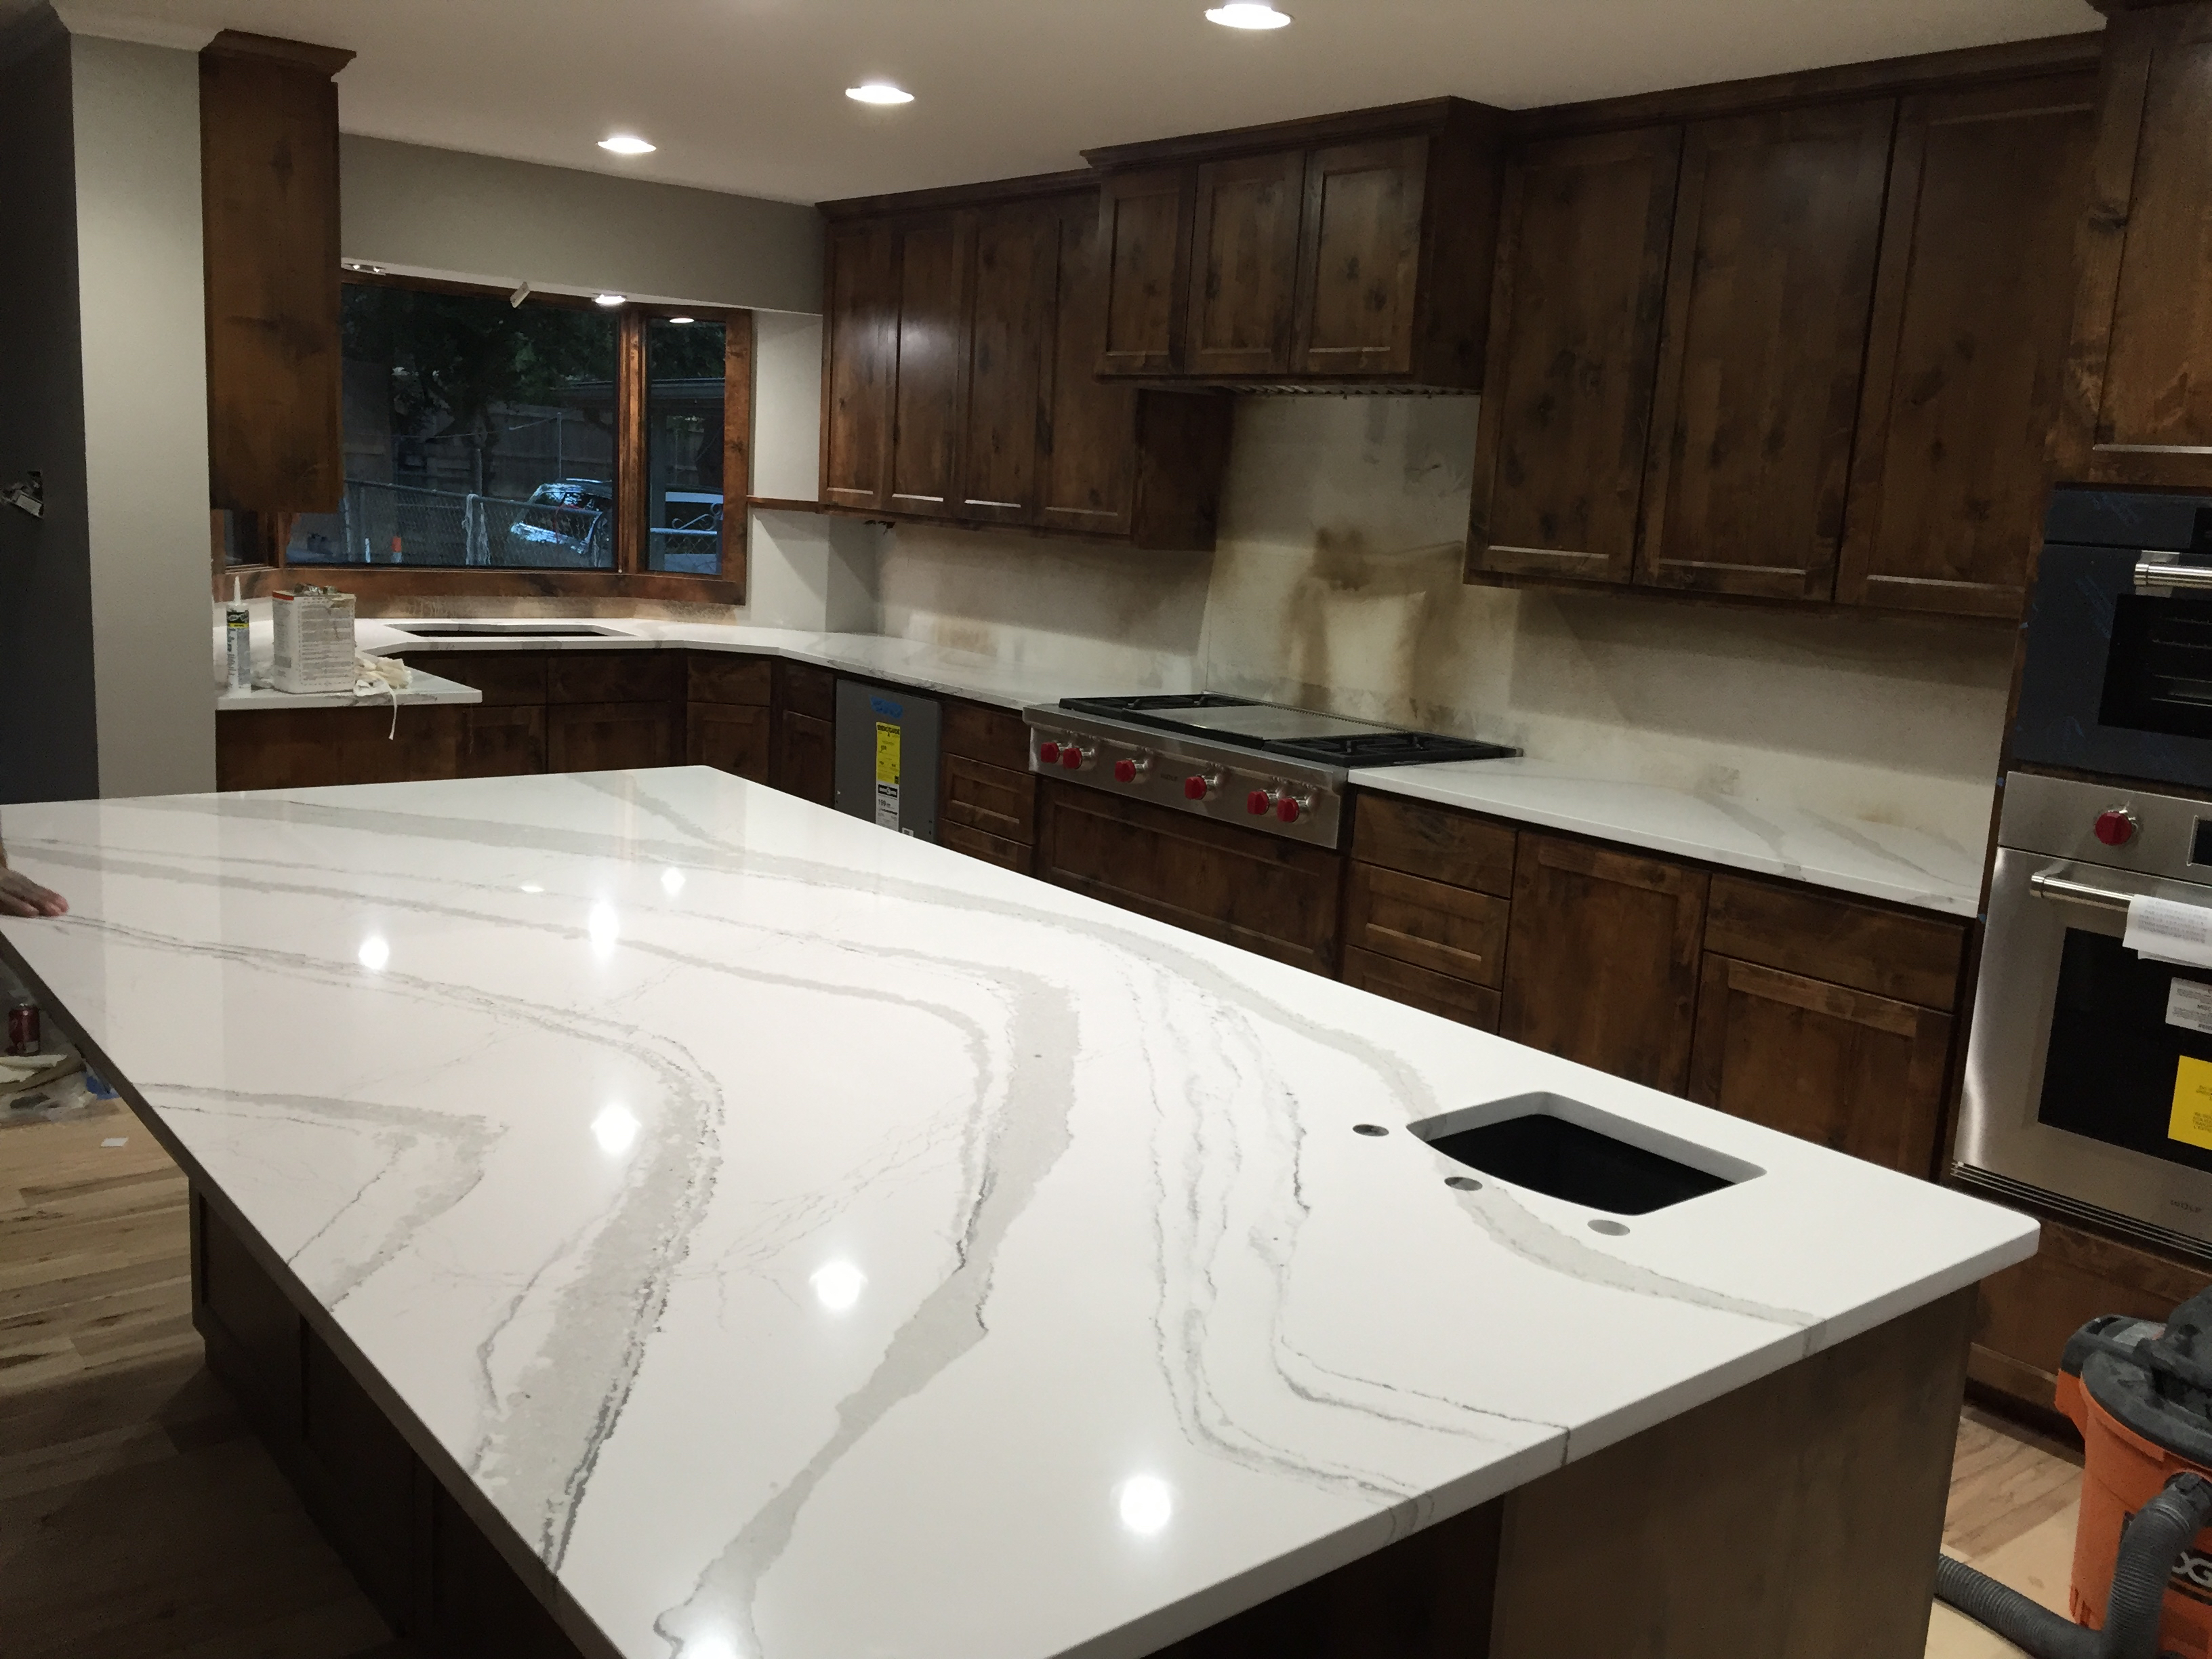 canterbury sink amazing countertop antique light picture grey cabinets cabinetswhite white beige stock undermount high cambria kitchen with cabinet countertops and outwhite quartz pull